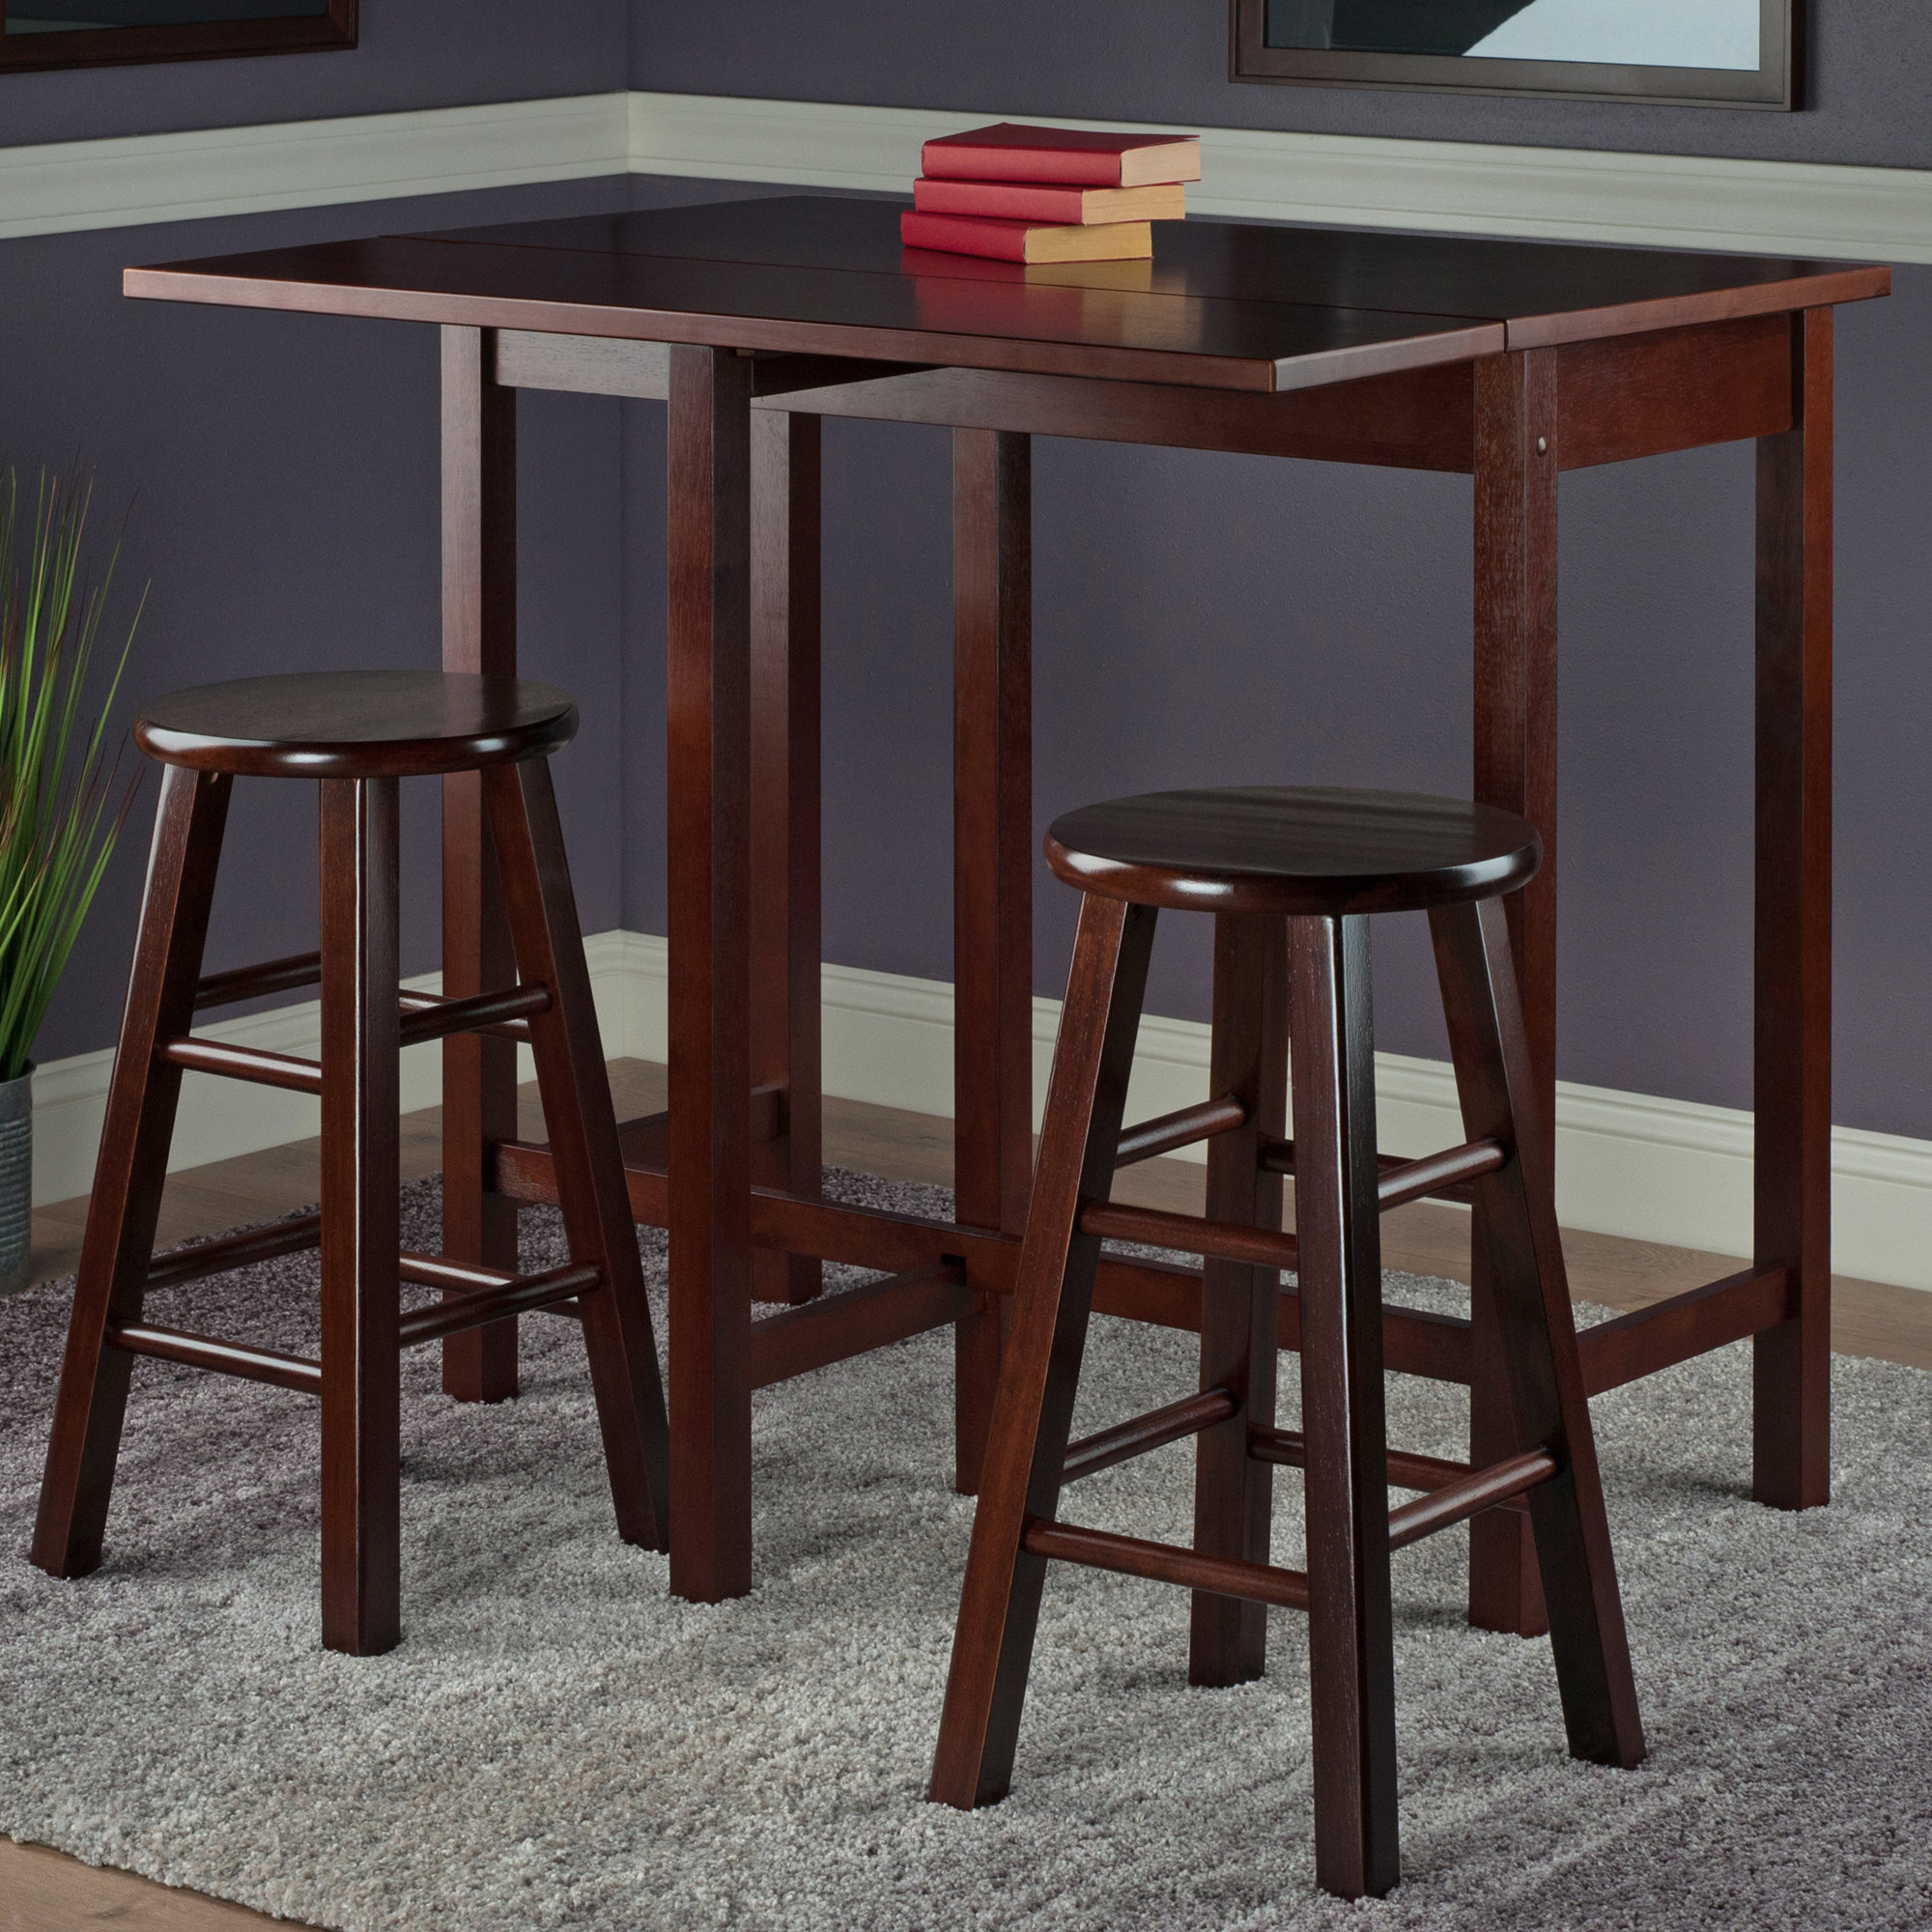 Bettencourt 3 Piece Counter Height Pub Table Set Within 2017 Bettencourt 3 Piece Counter Height Solid Wood Dining Sets (View 3 of 20)